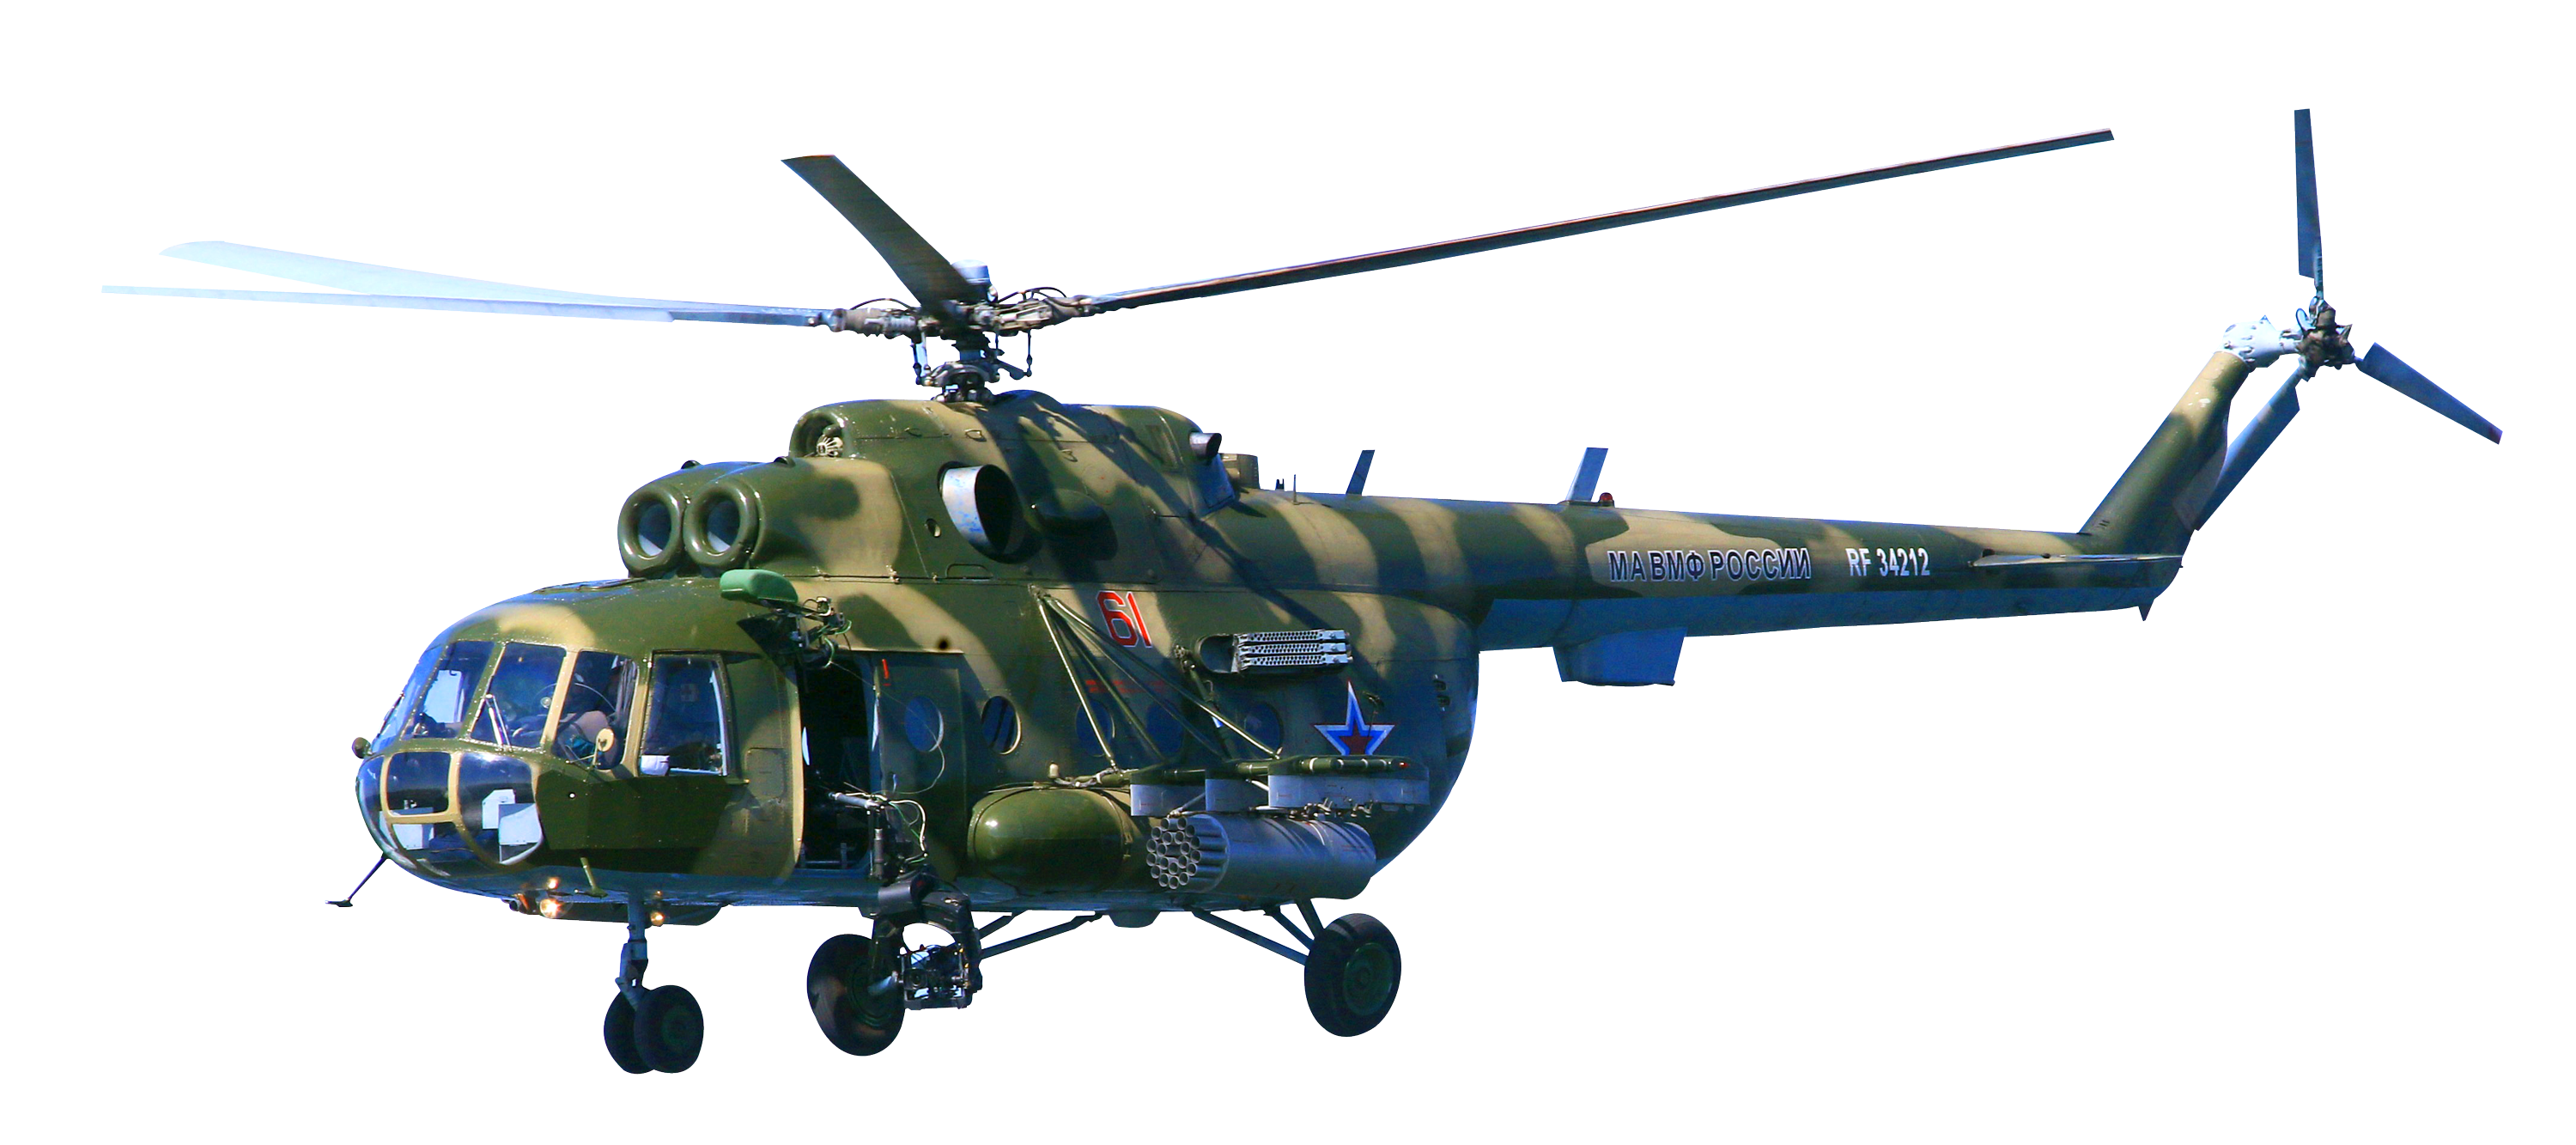 Army Helicopter Png - Military Helicopter PNG Image - PurePNG | Free transparent CC0 PNG ...